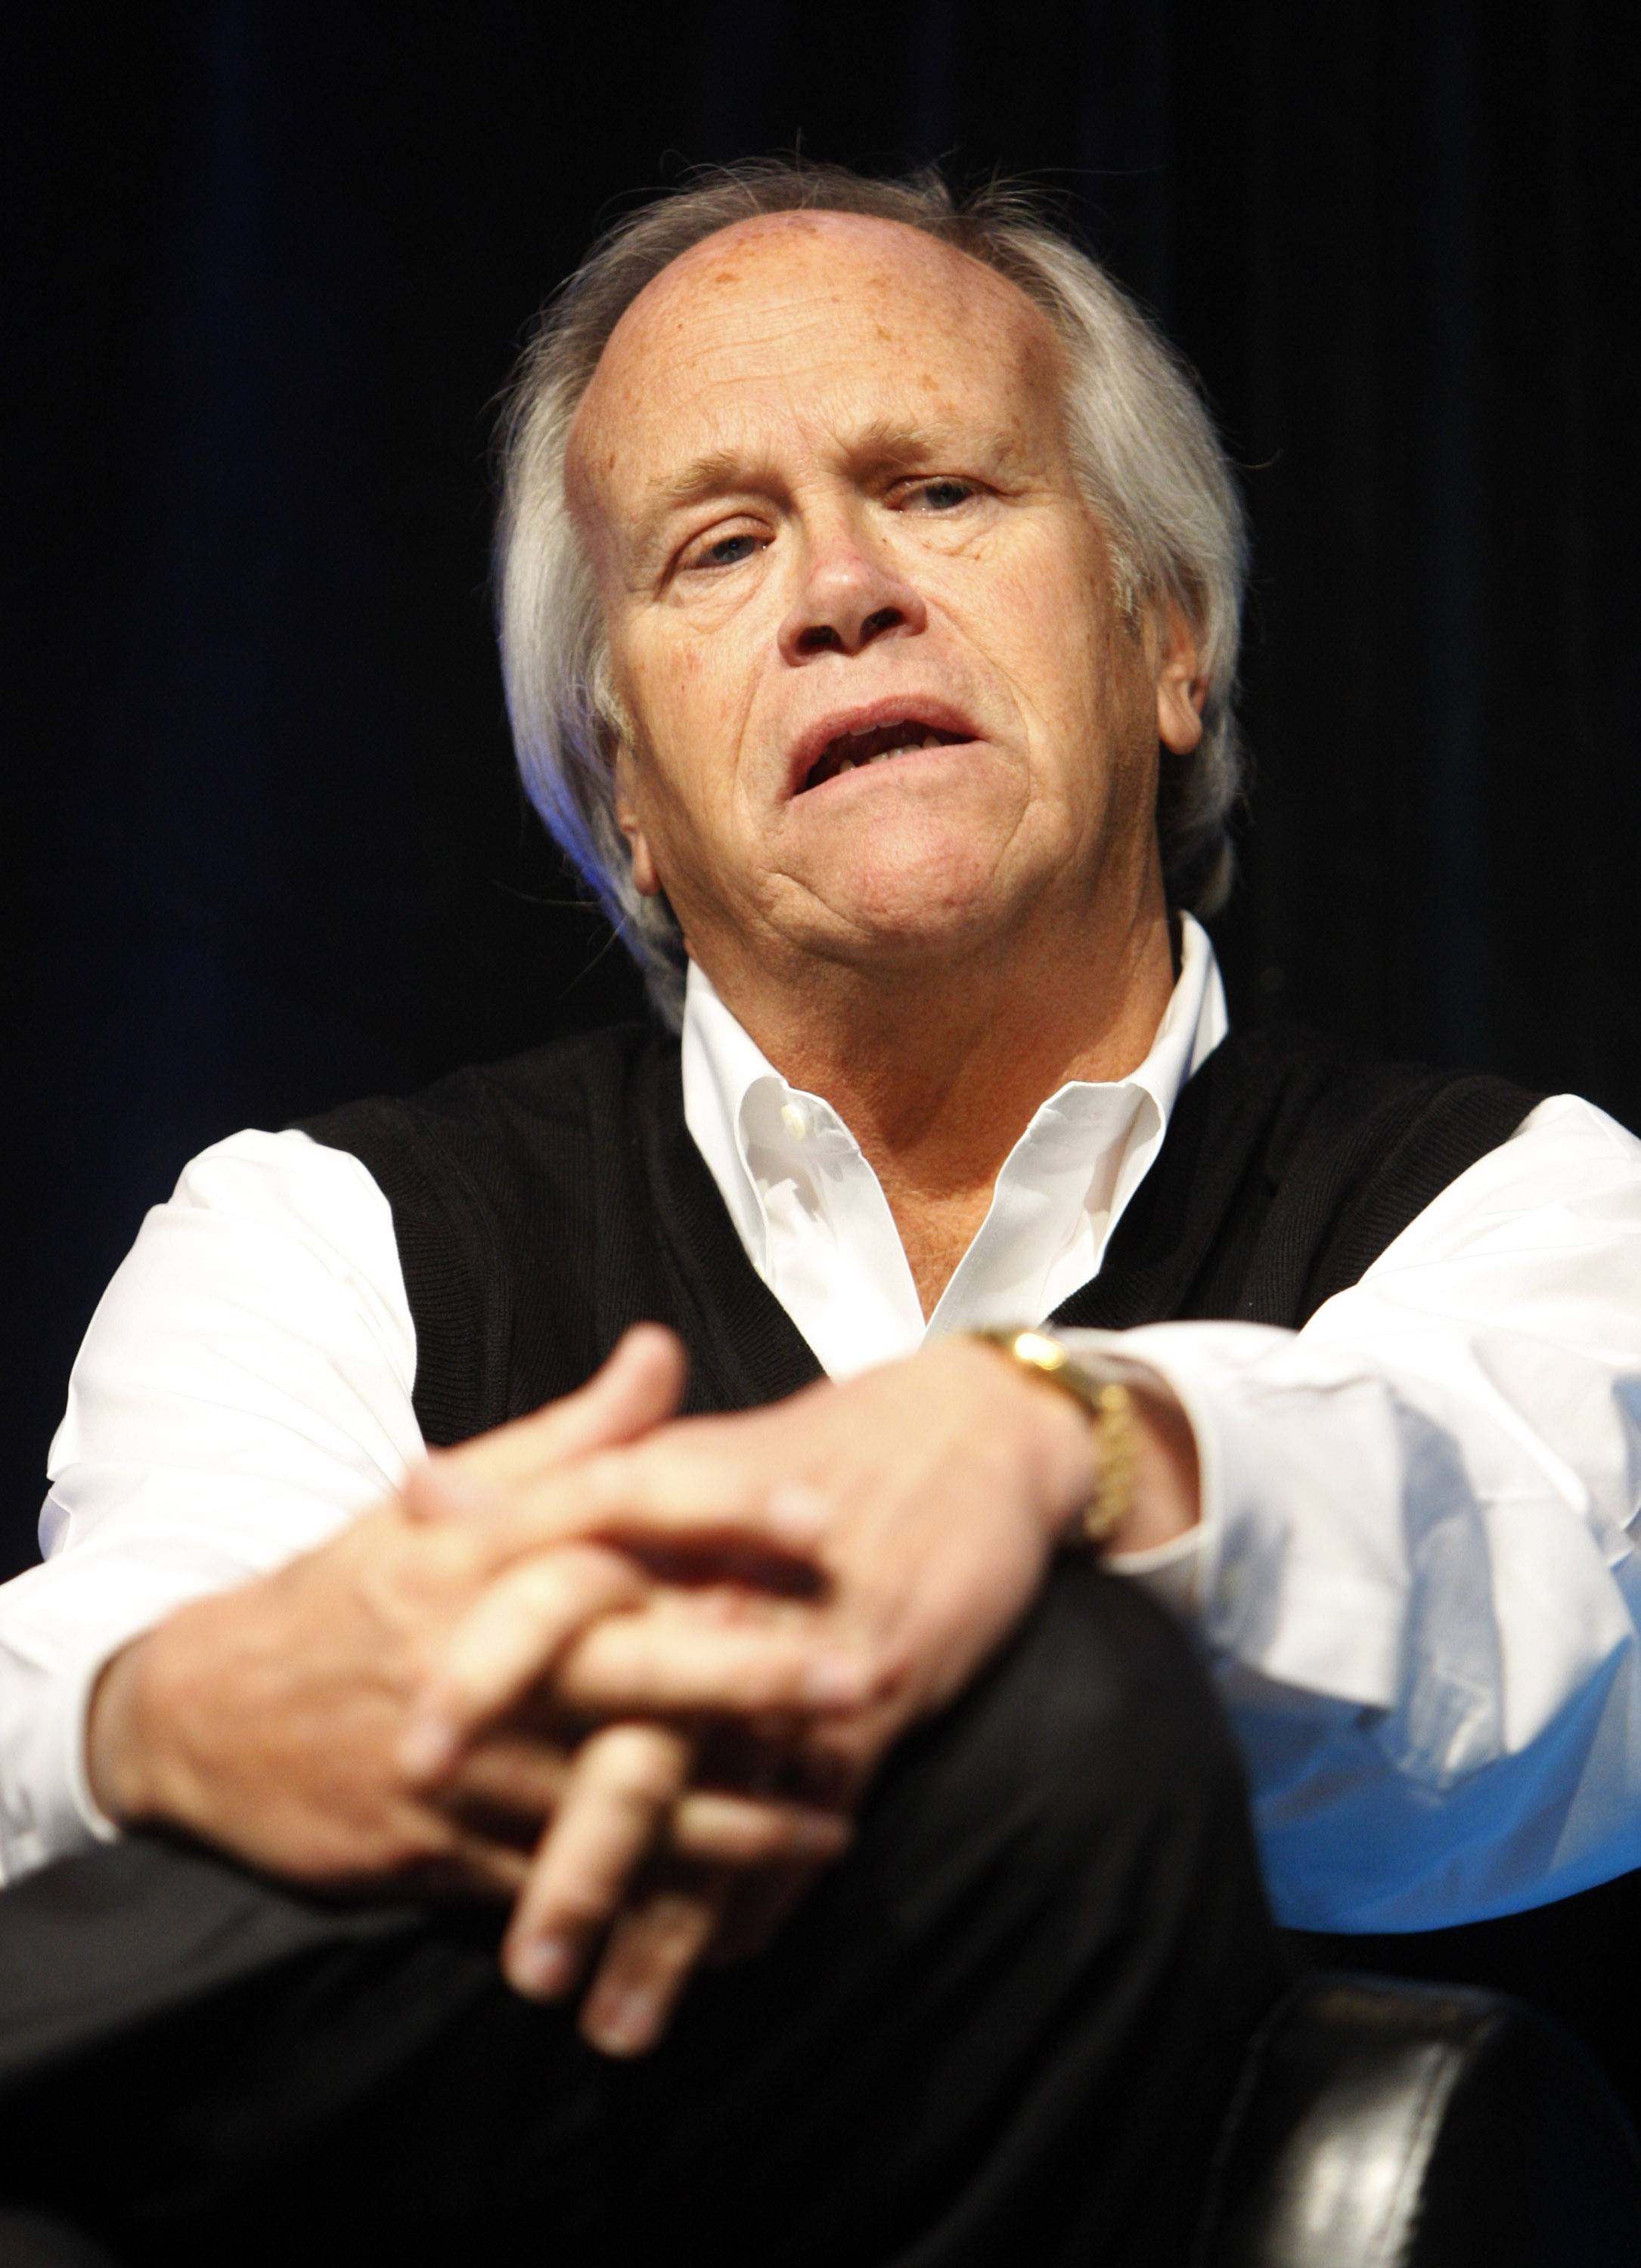 NBC Sports chief Dick Ebersol